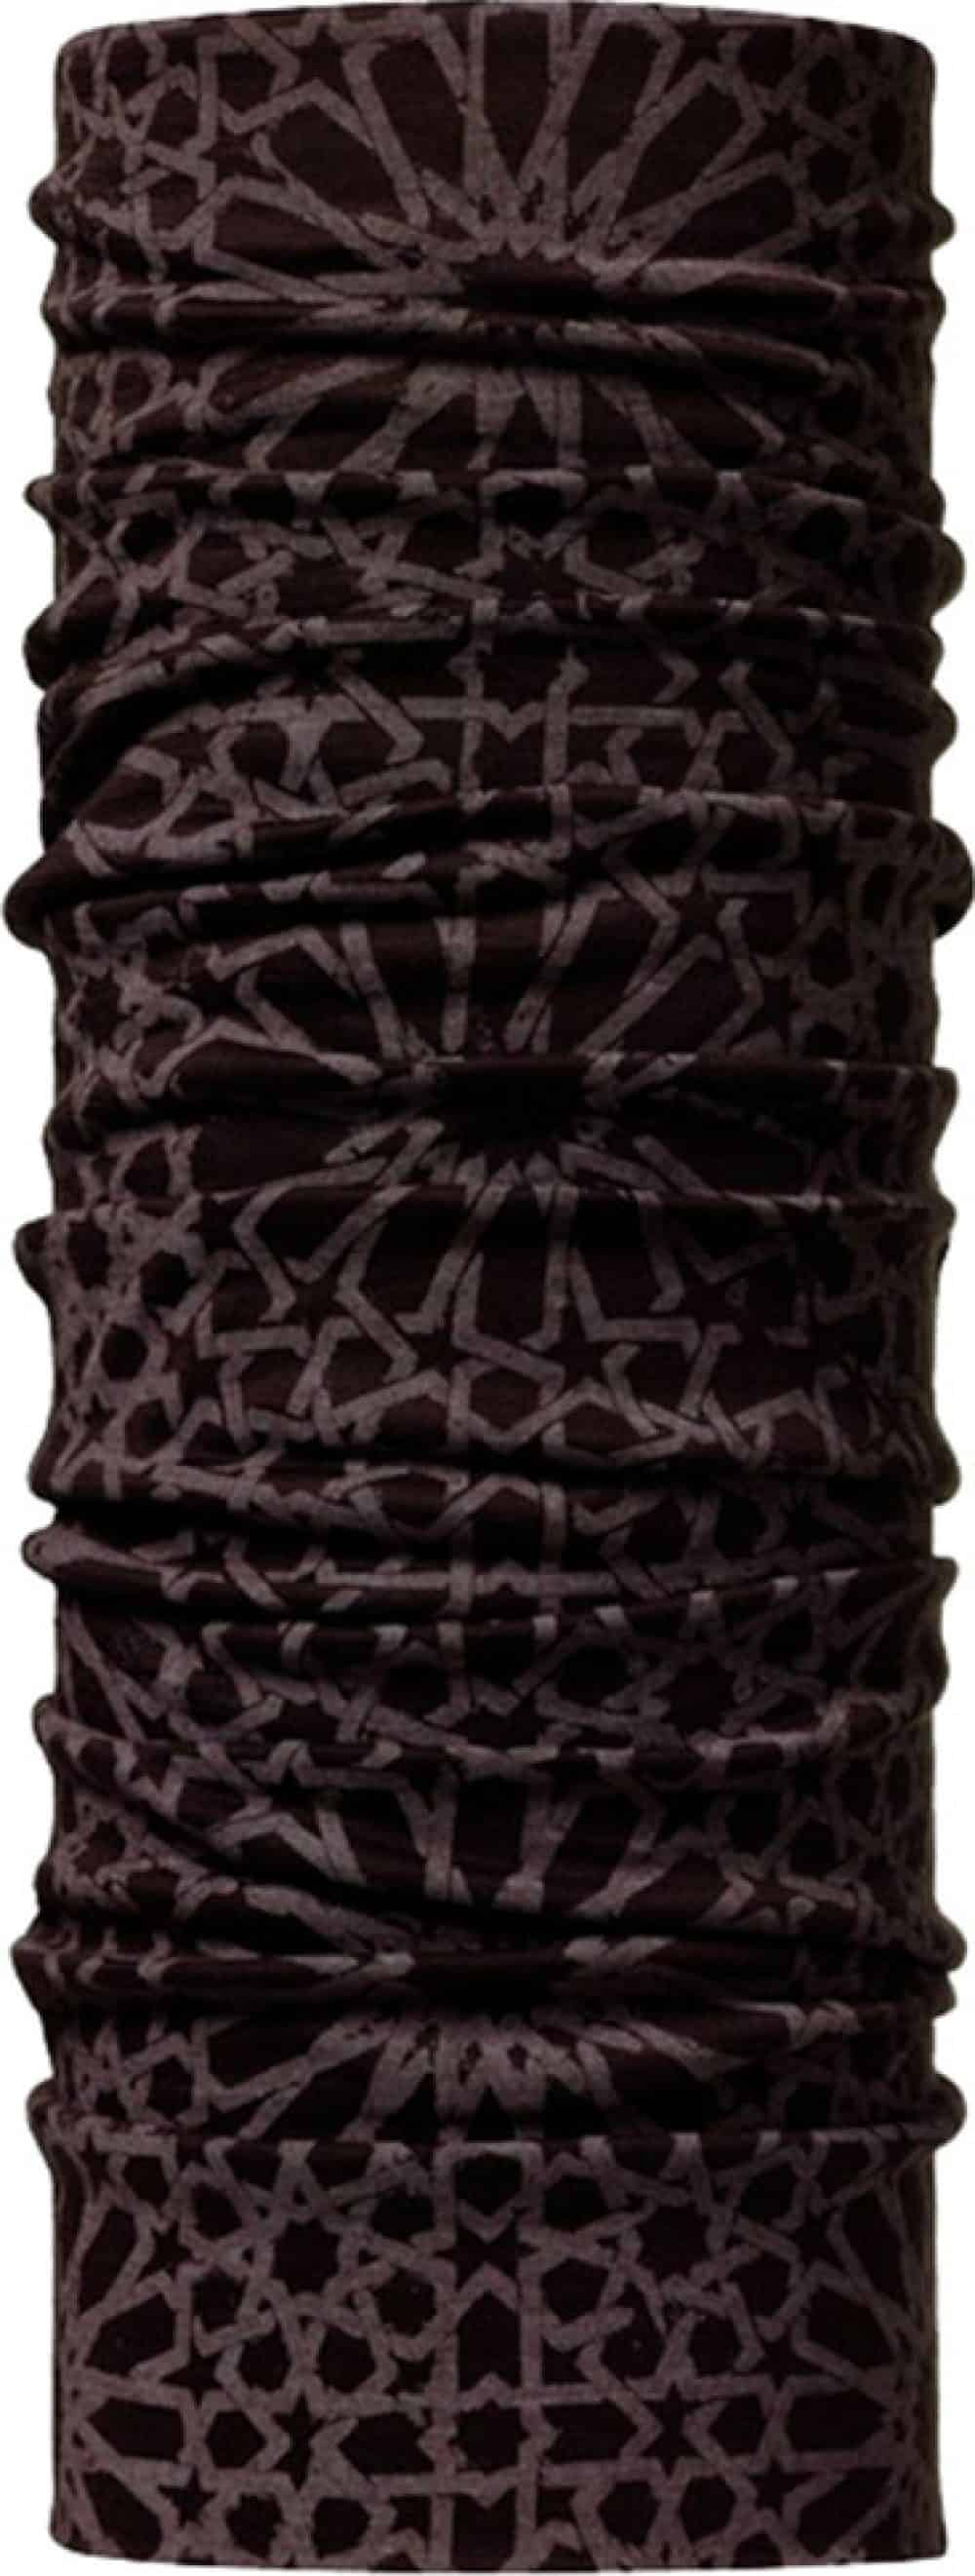 "Studio photo of the Wool Buff® Design ""Tiznit Carmelita"". Source: buff.eu"